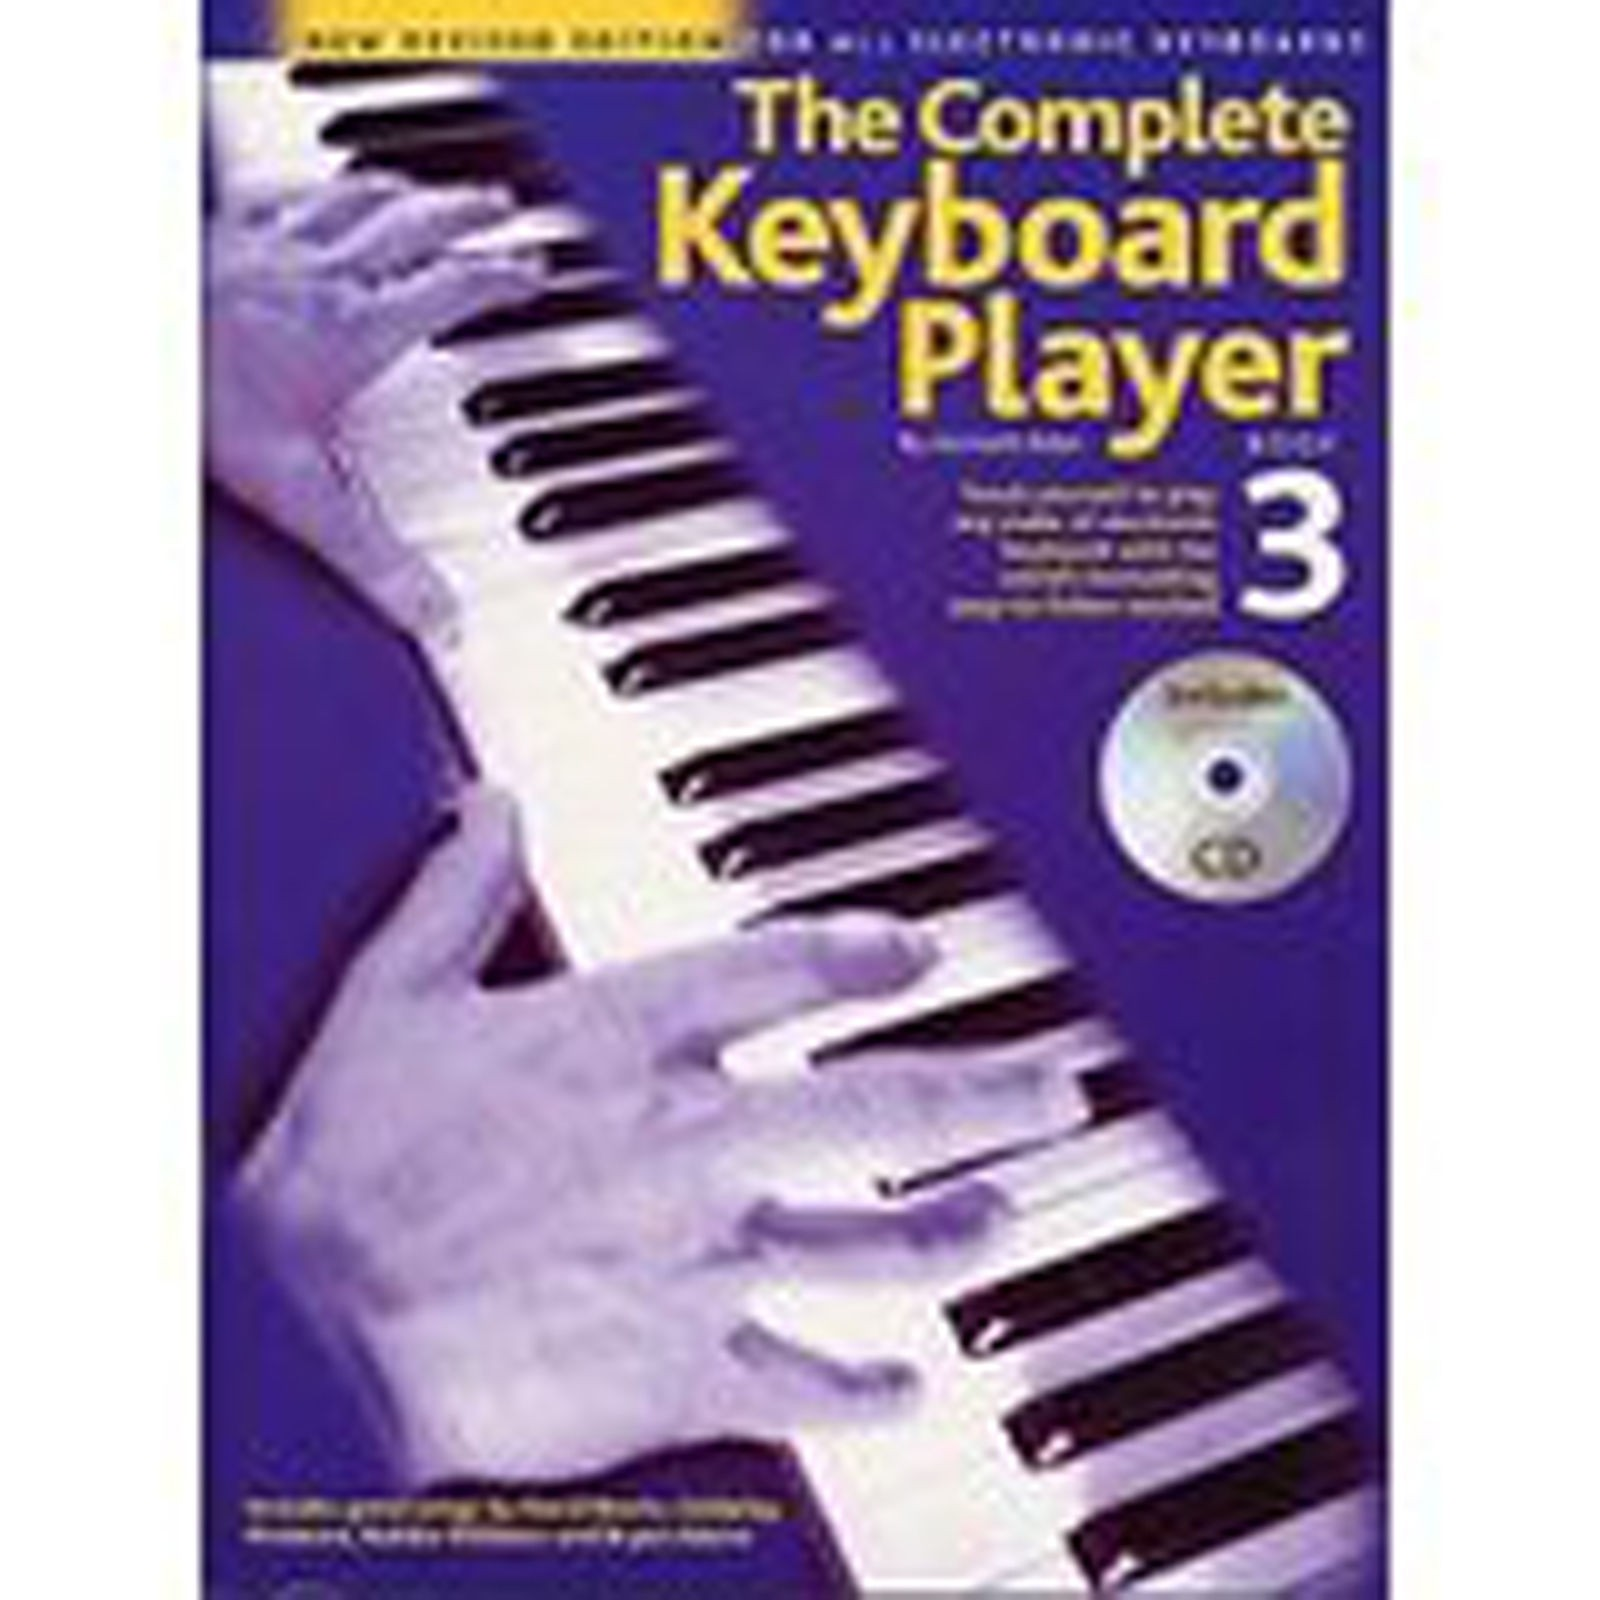 The Complete Keyboard Player Book 3 Teach Yourself Piano by Kenneth Baker S11